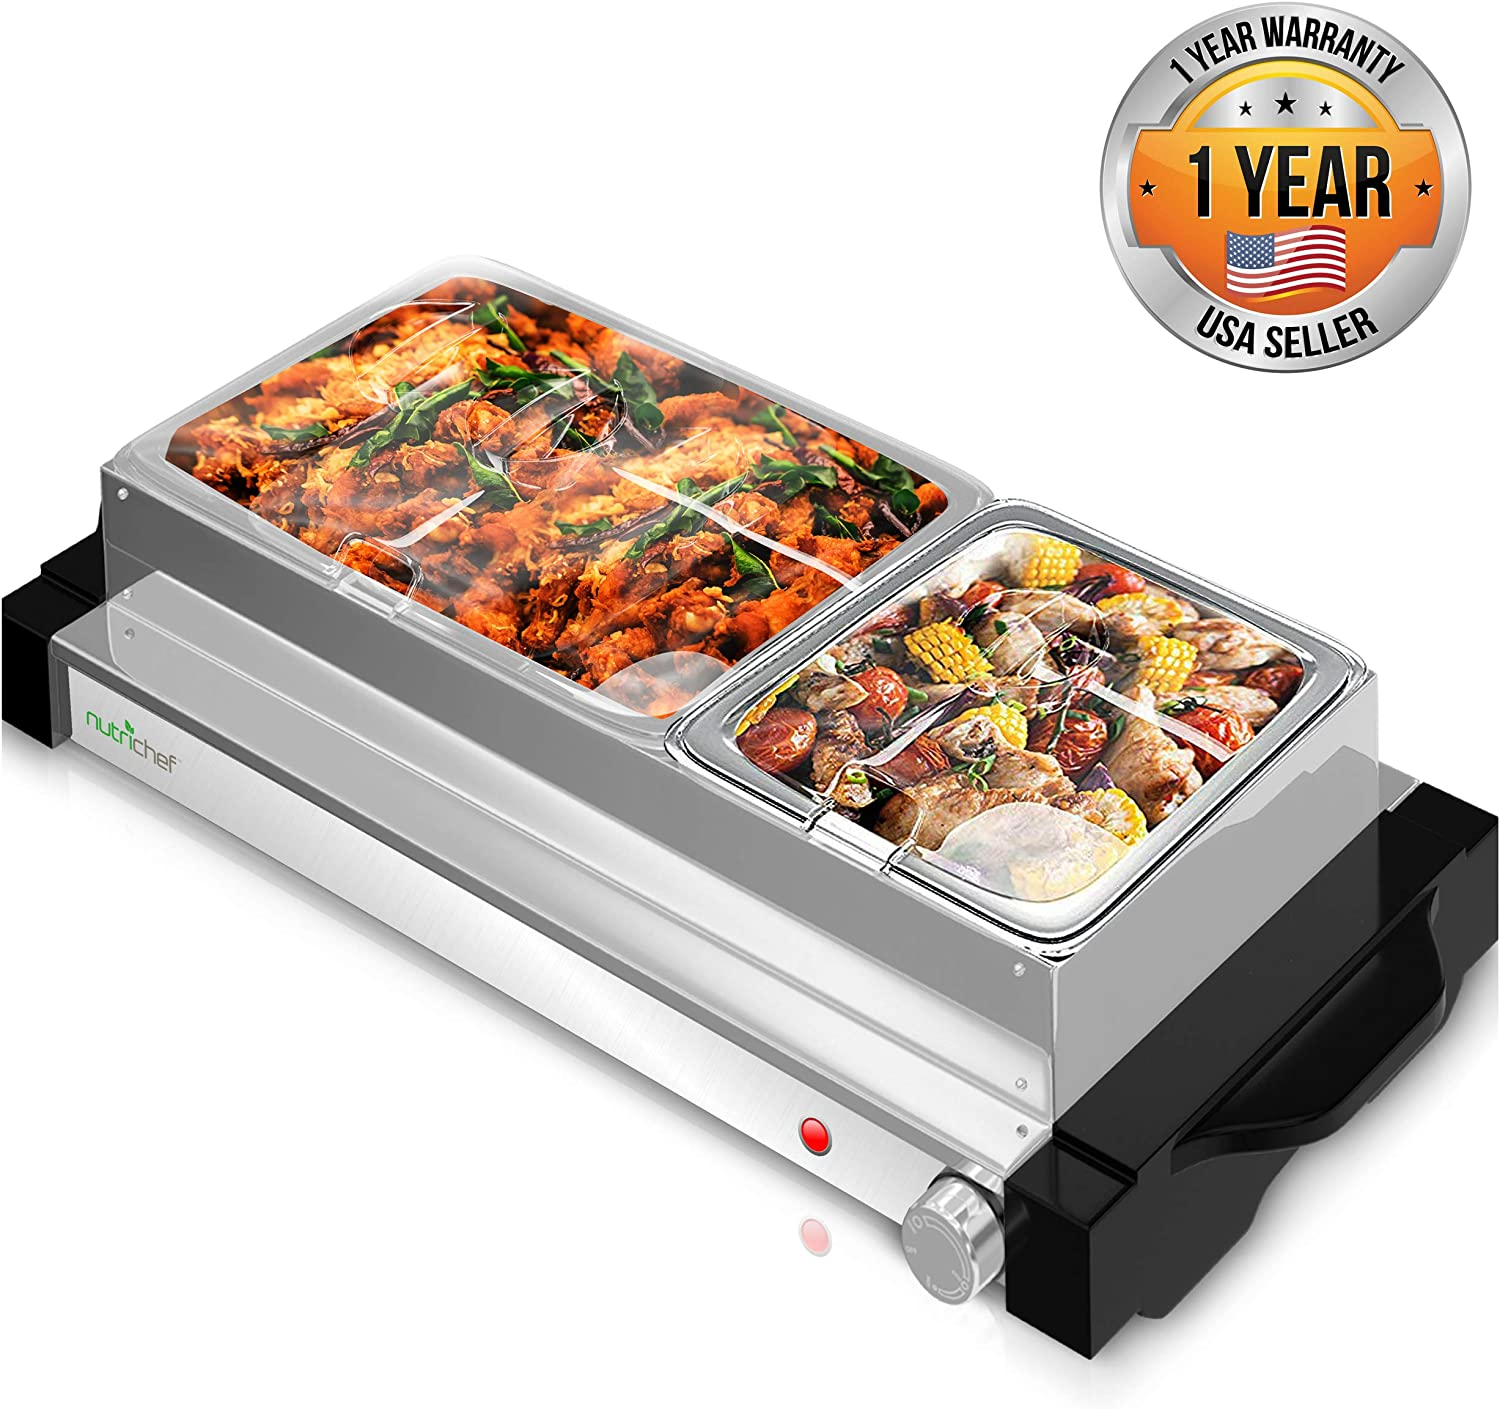 NutriChef PKBFWM25 Hot Plate Food Warmer-Dual Buffet Server Chafing Dish Set, Portable Countertop Stainless Steel Electric Warming Tray w/ 2 Section 1.6, 3.2, Large, Black